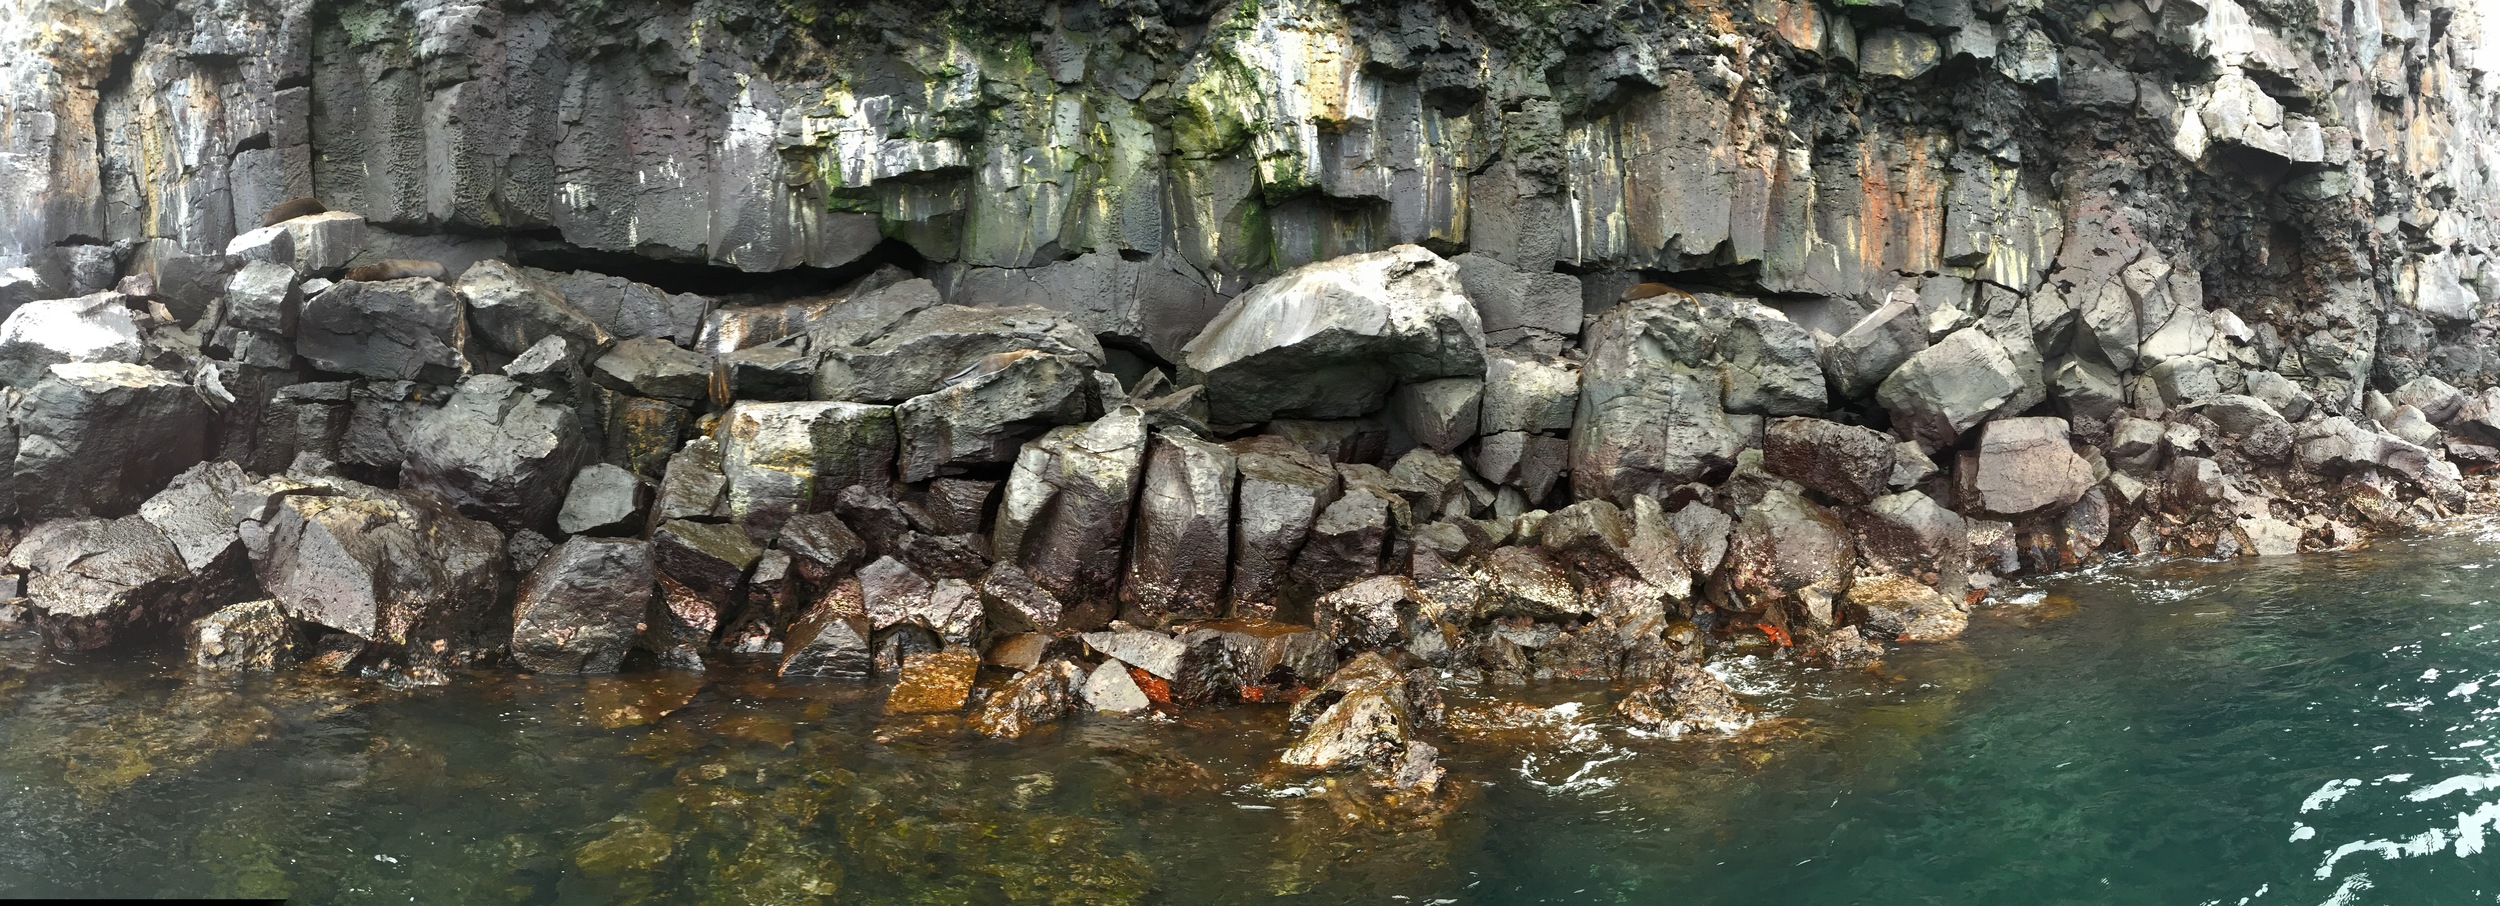 This rocky coastline at Isla Genovesa was a favorite hangout of fur seals, which made for fun underwater swim companions as we snorkeled here.